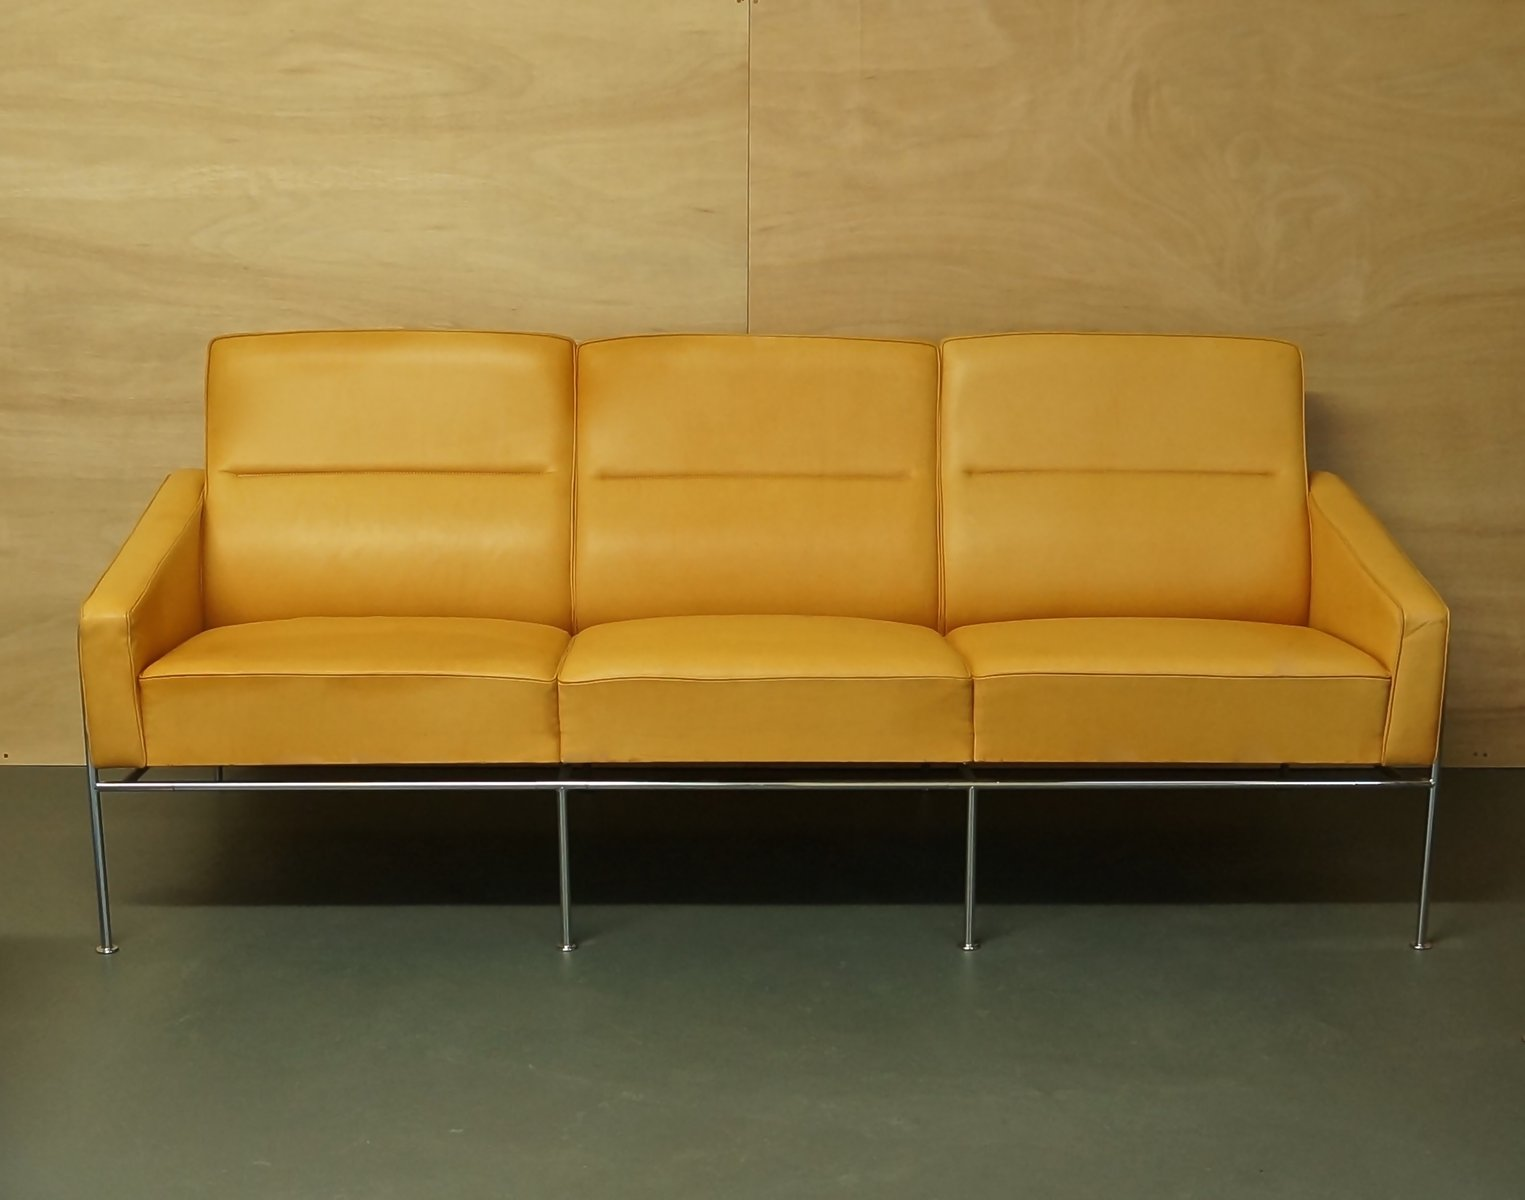 Vintage Light Tan Leather Series 3303 Sofa By Arne Jacobsen For Fritz Hansen For Sale At Pamono